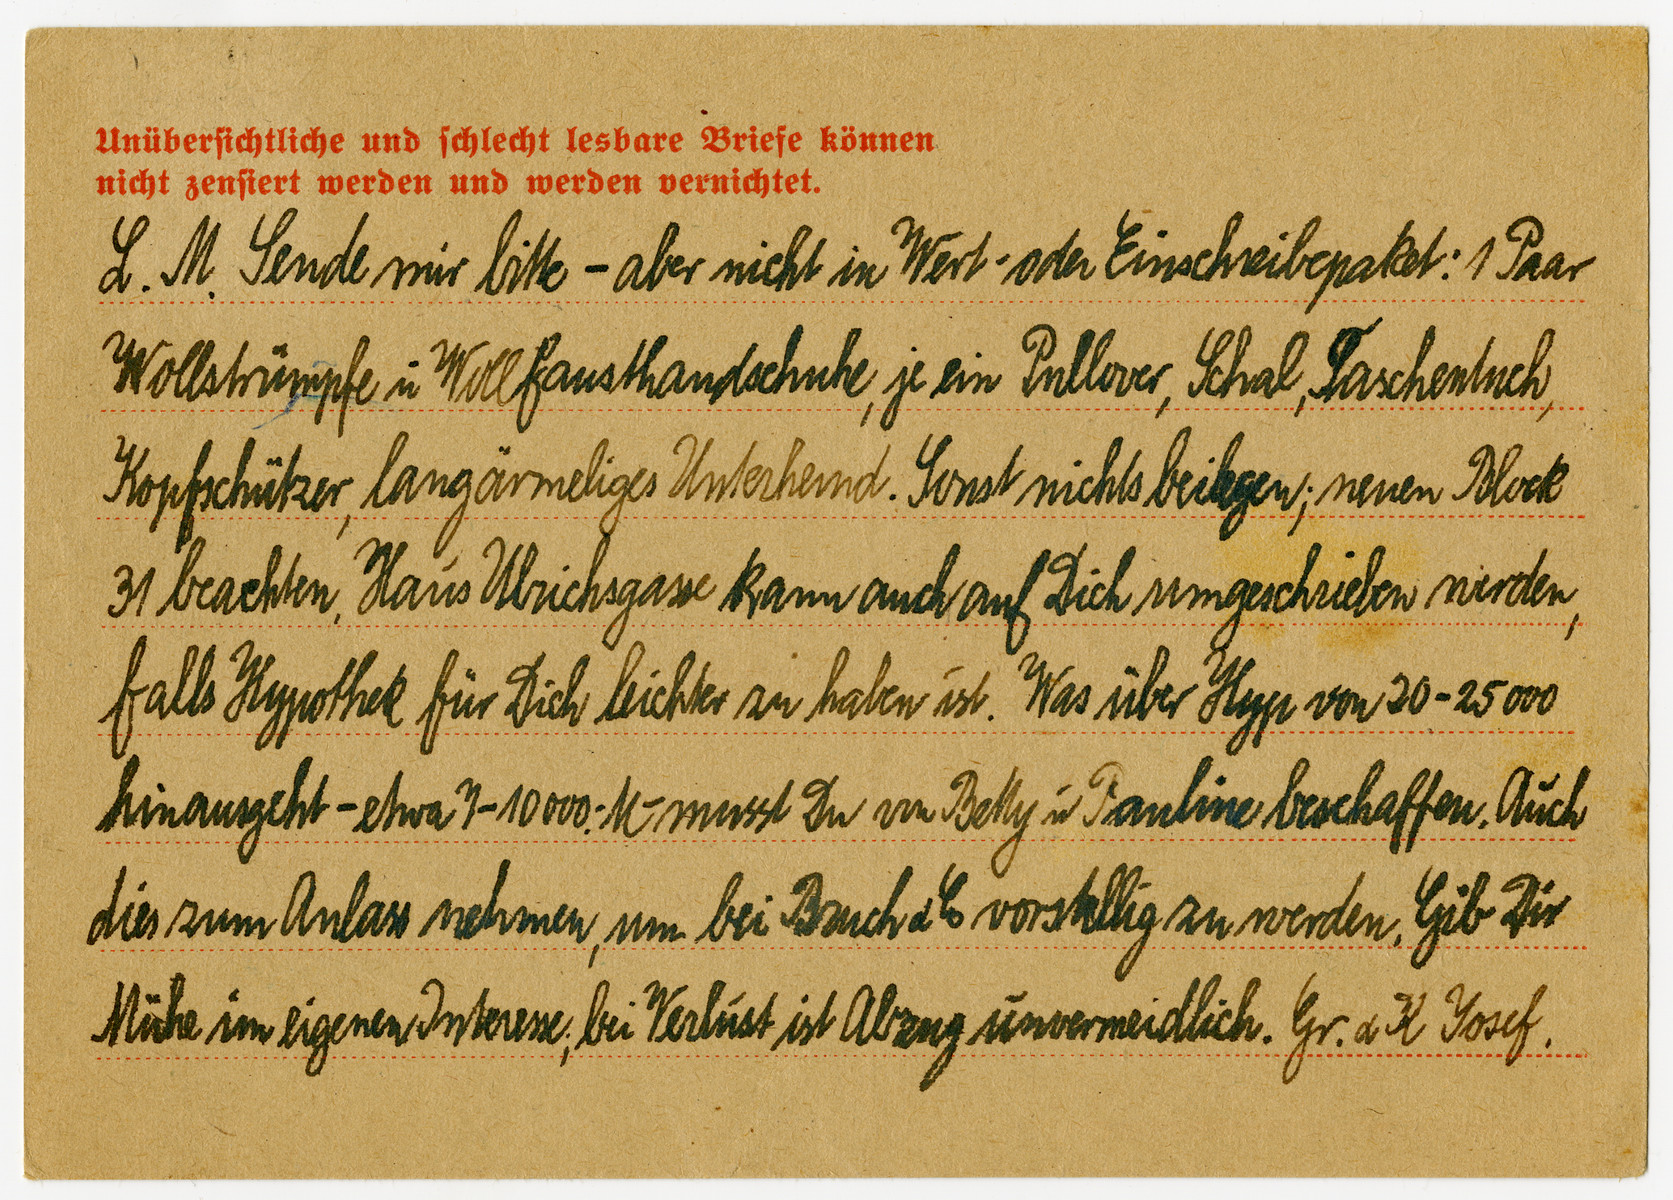 Verso of a postcard sent from the Buchenwald concentration camp.